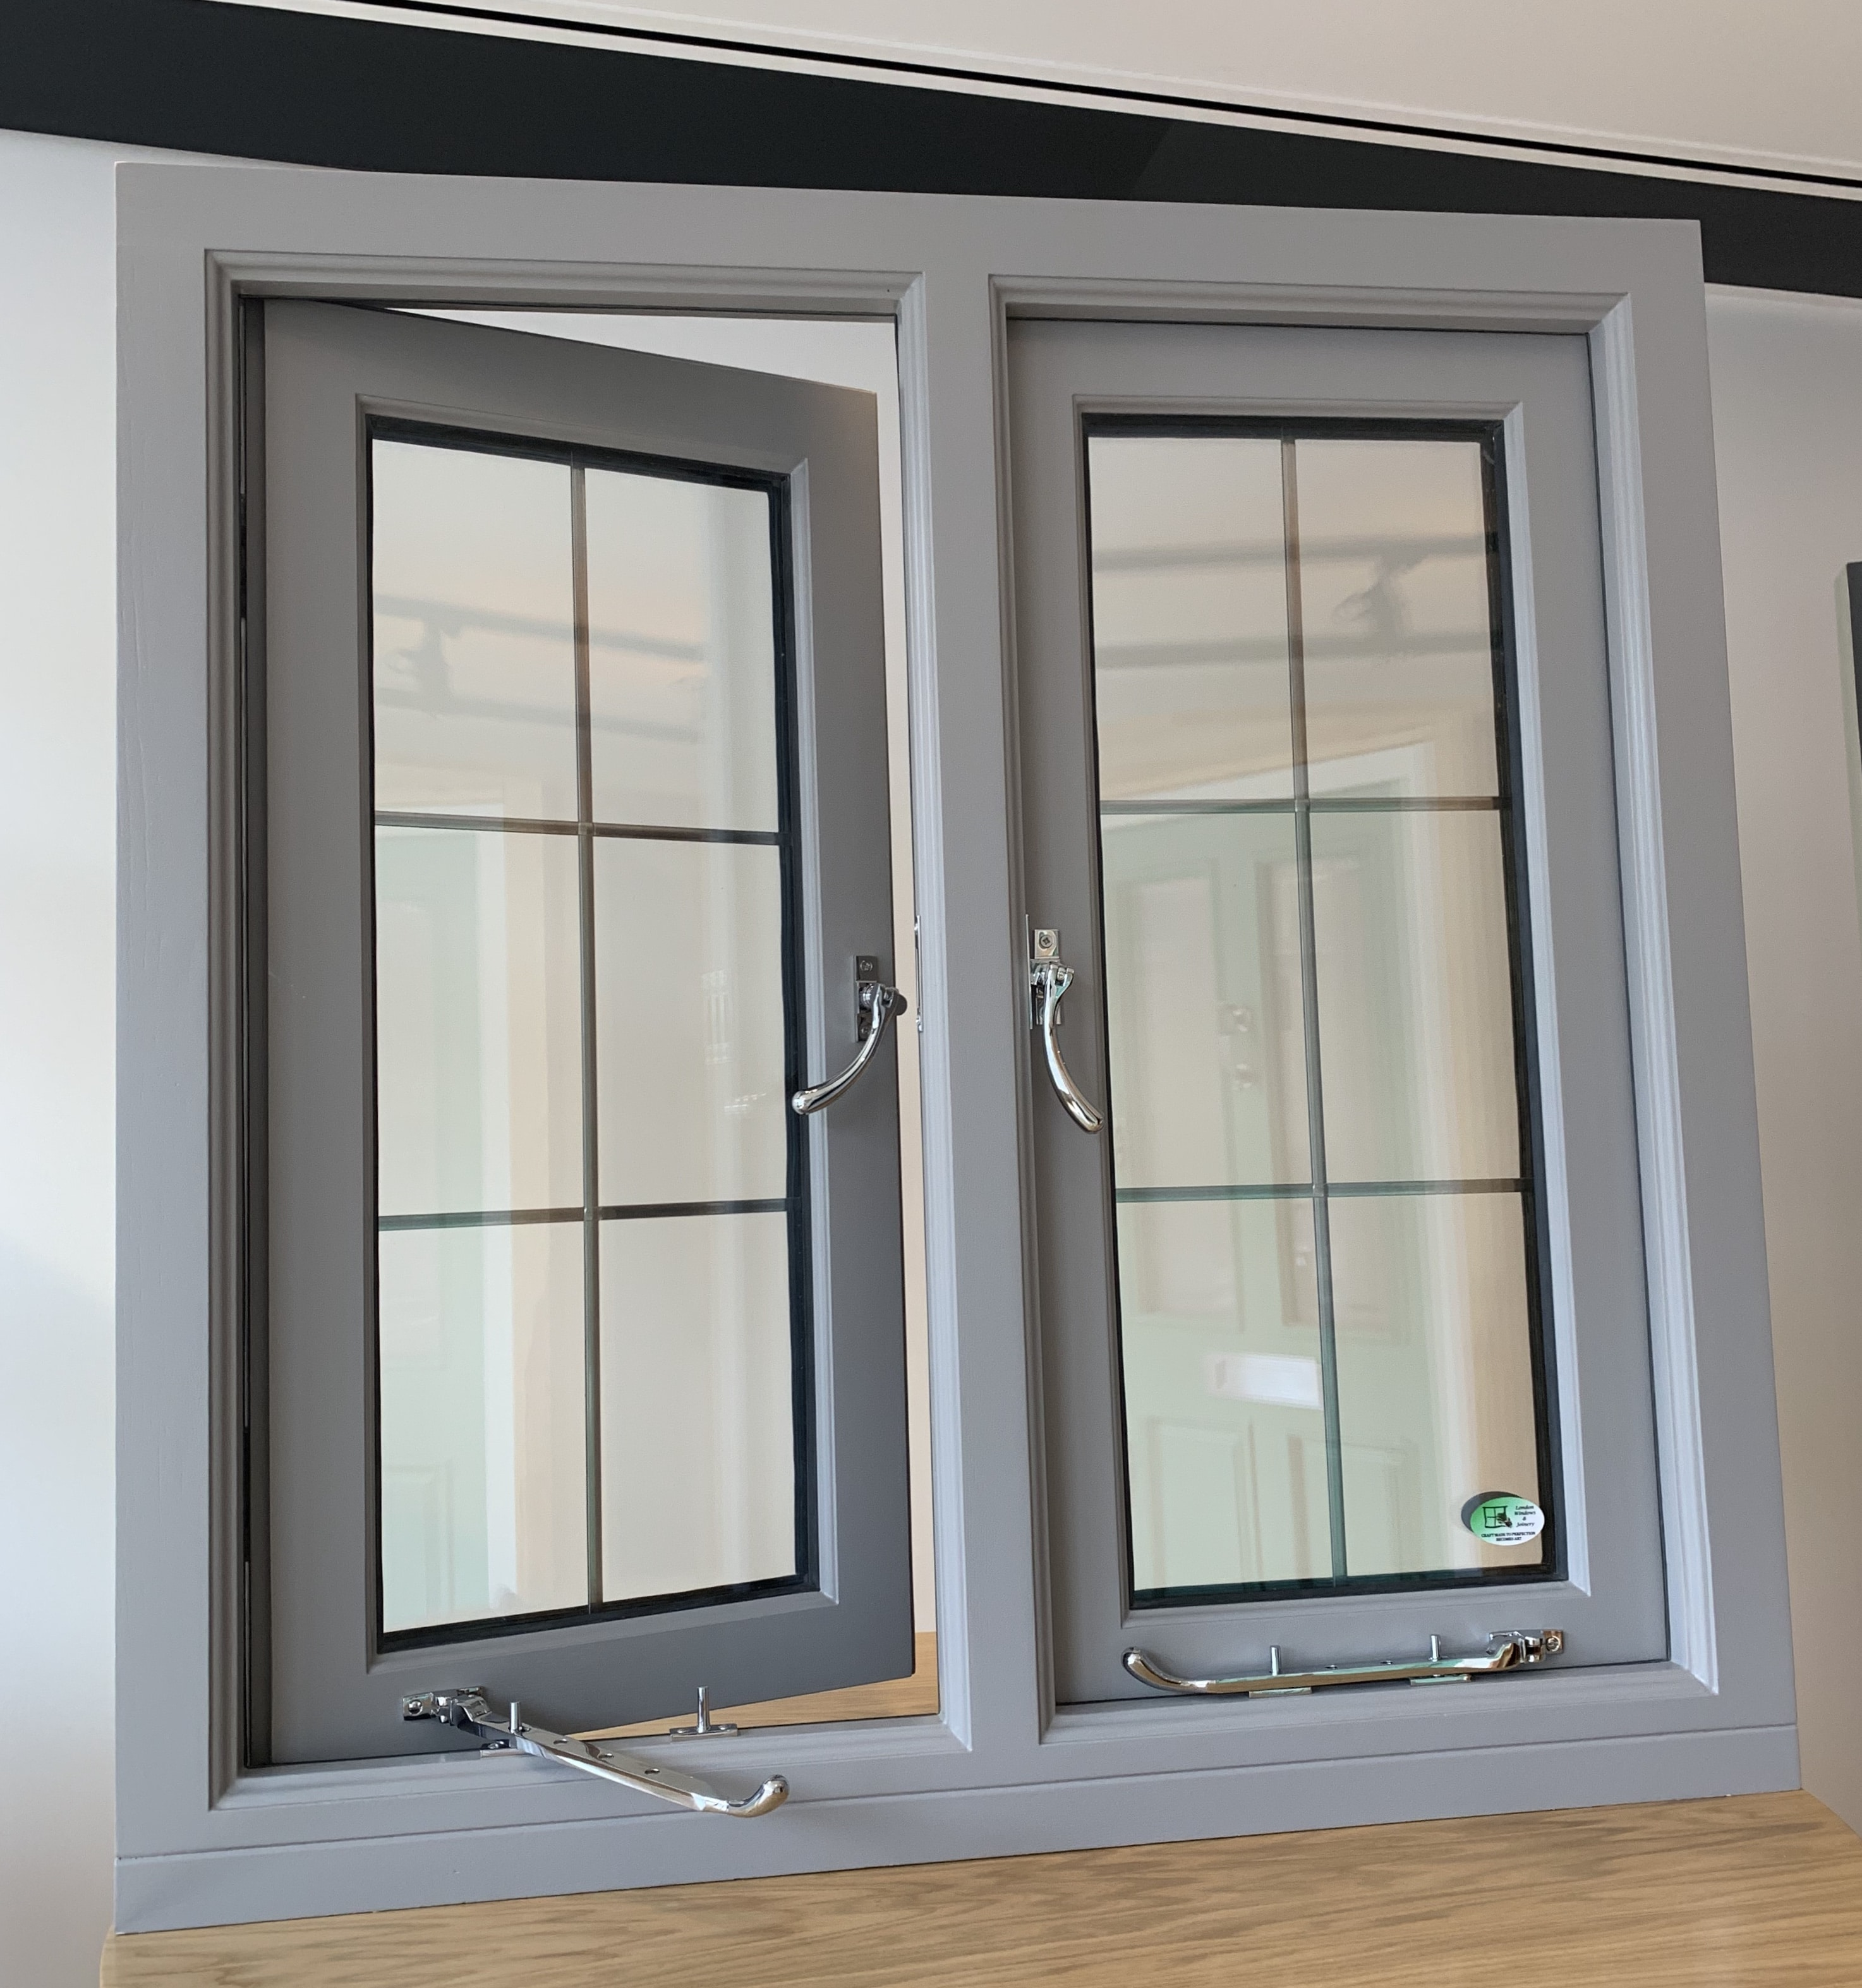 Double glazed window, traditional flash casement. Toughened glass with lead bars. Fully factory finished.